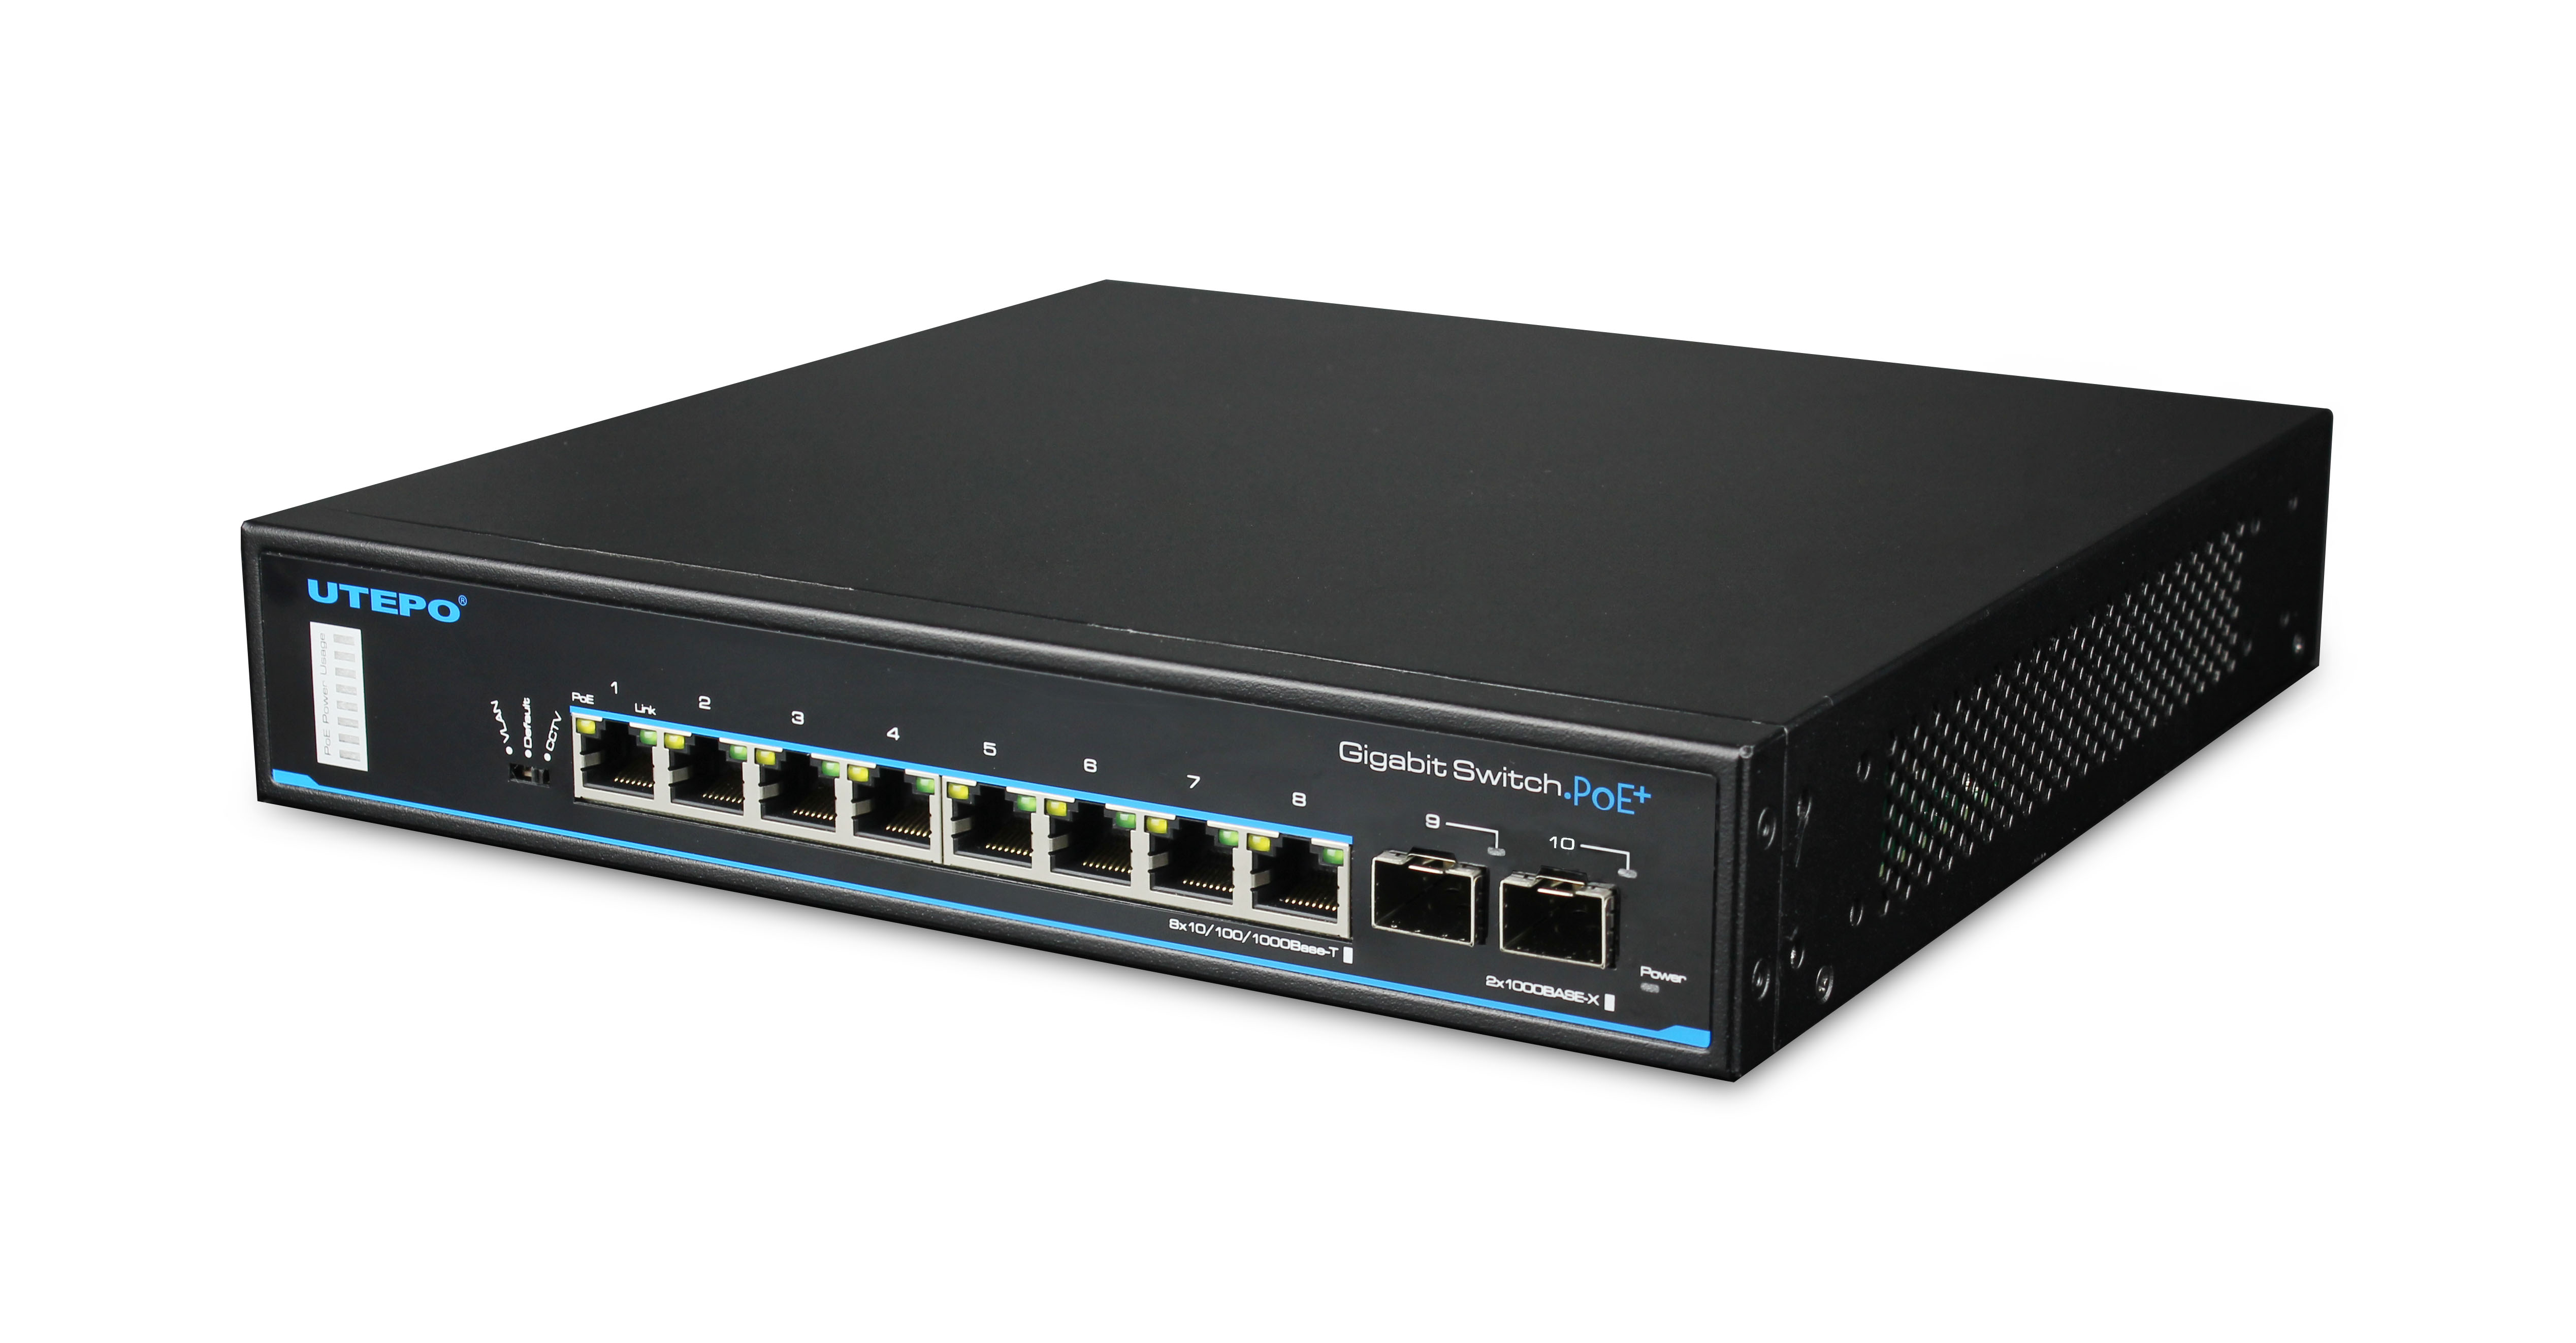 8 Ports Gigabit PoE Switch